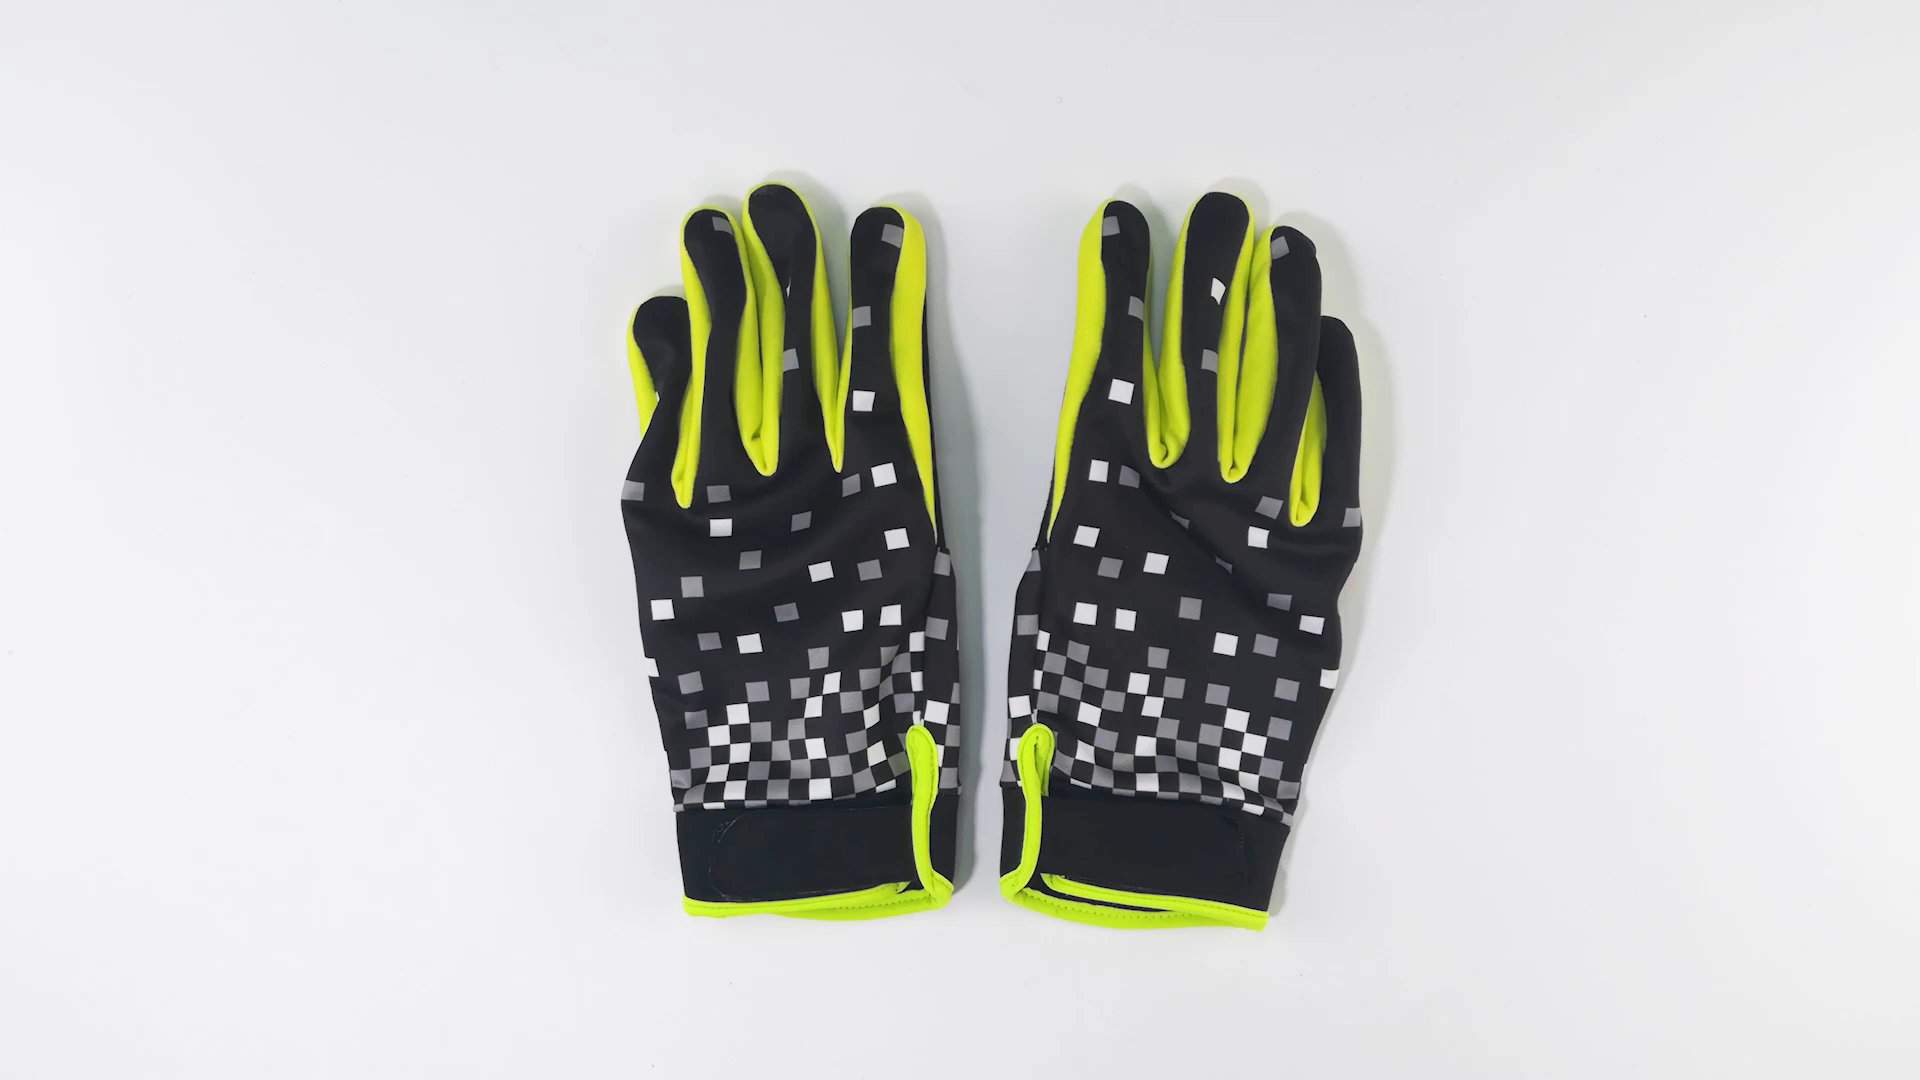 2020 Universal Stretchable Unisex Fluorescent Green Bike Running Bicycle Cycle Cycling Gloves with Gel Padded